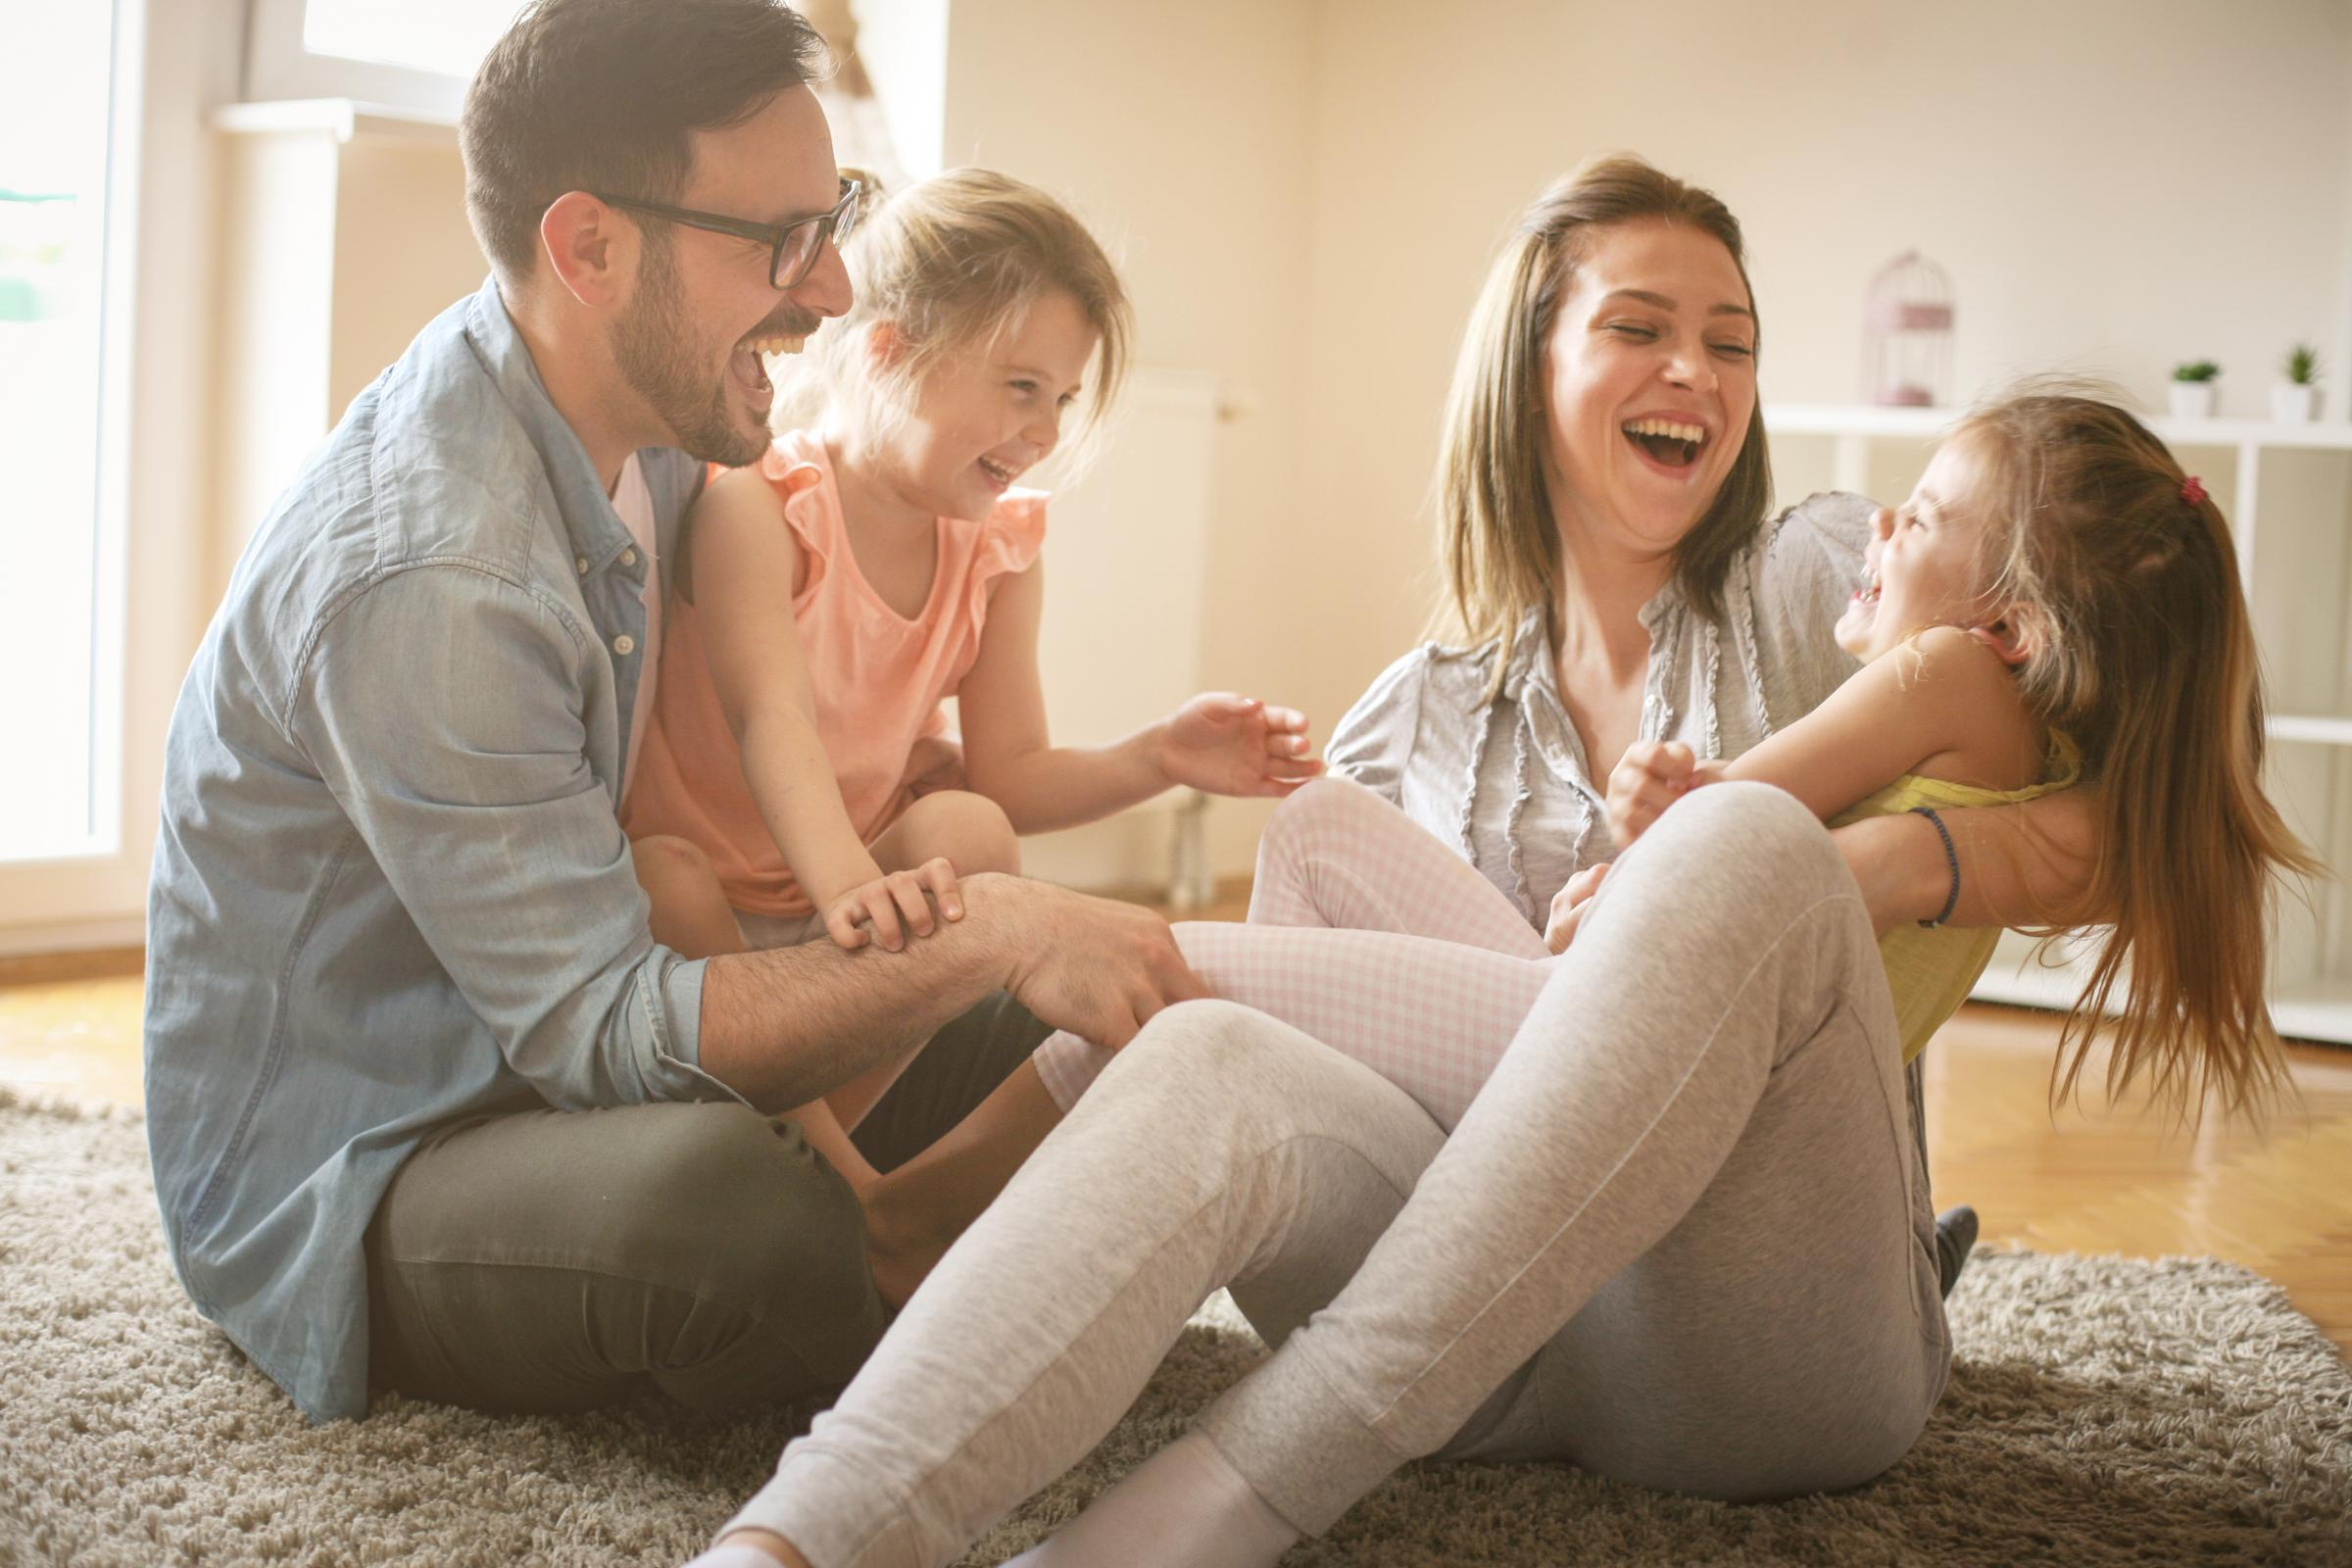 Happy Family Laughing and Playing on Living Room Floor